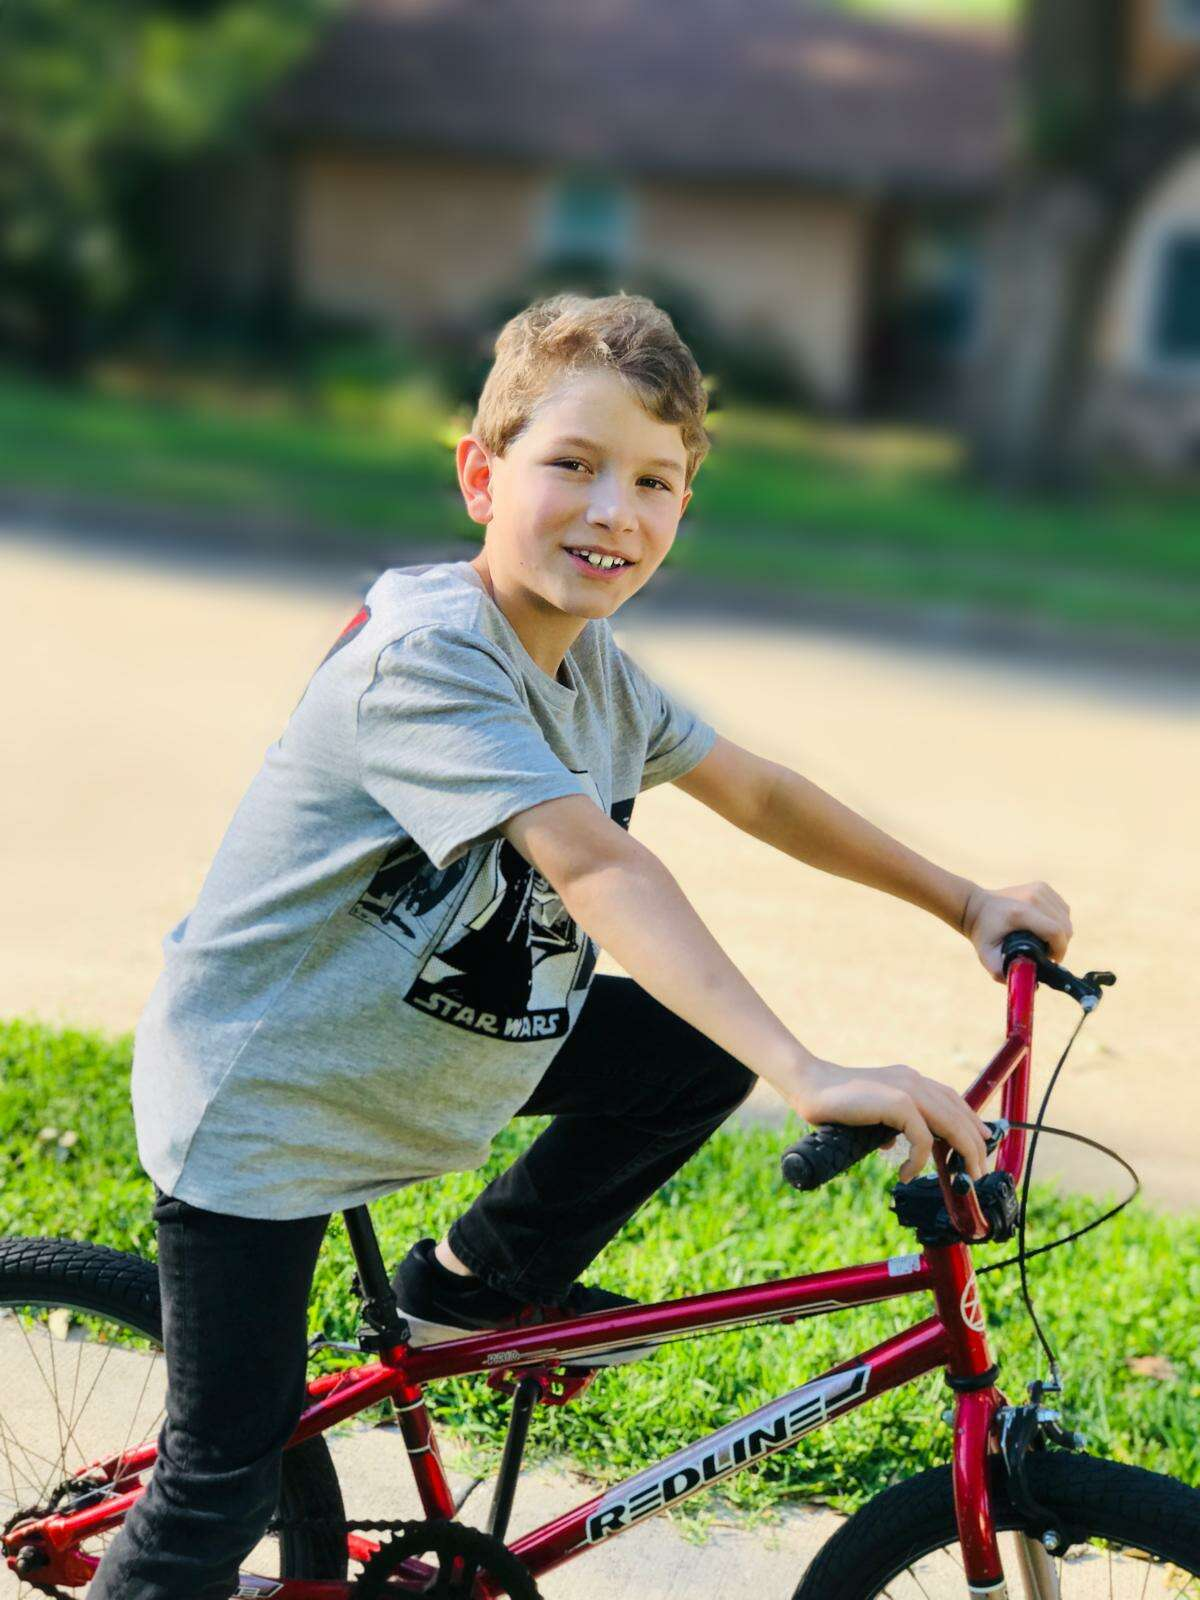 Victor Peterzen, who was struck and killed by a car while riding his bike through their neighborhood earlier this month, photographed earlier this year. His parents are hosting a vigil this week hoping to raise awareness about bicycle safety, distracted driving and organ donation. Photographed on Thursday, Sept. 17, 2020, in Houston.